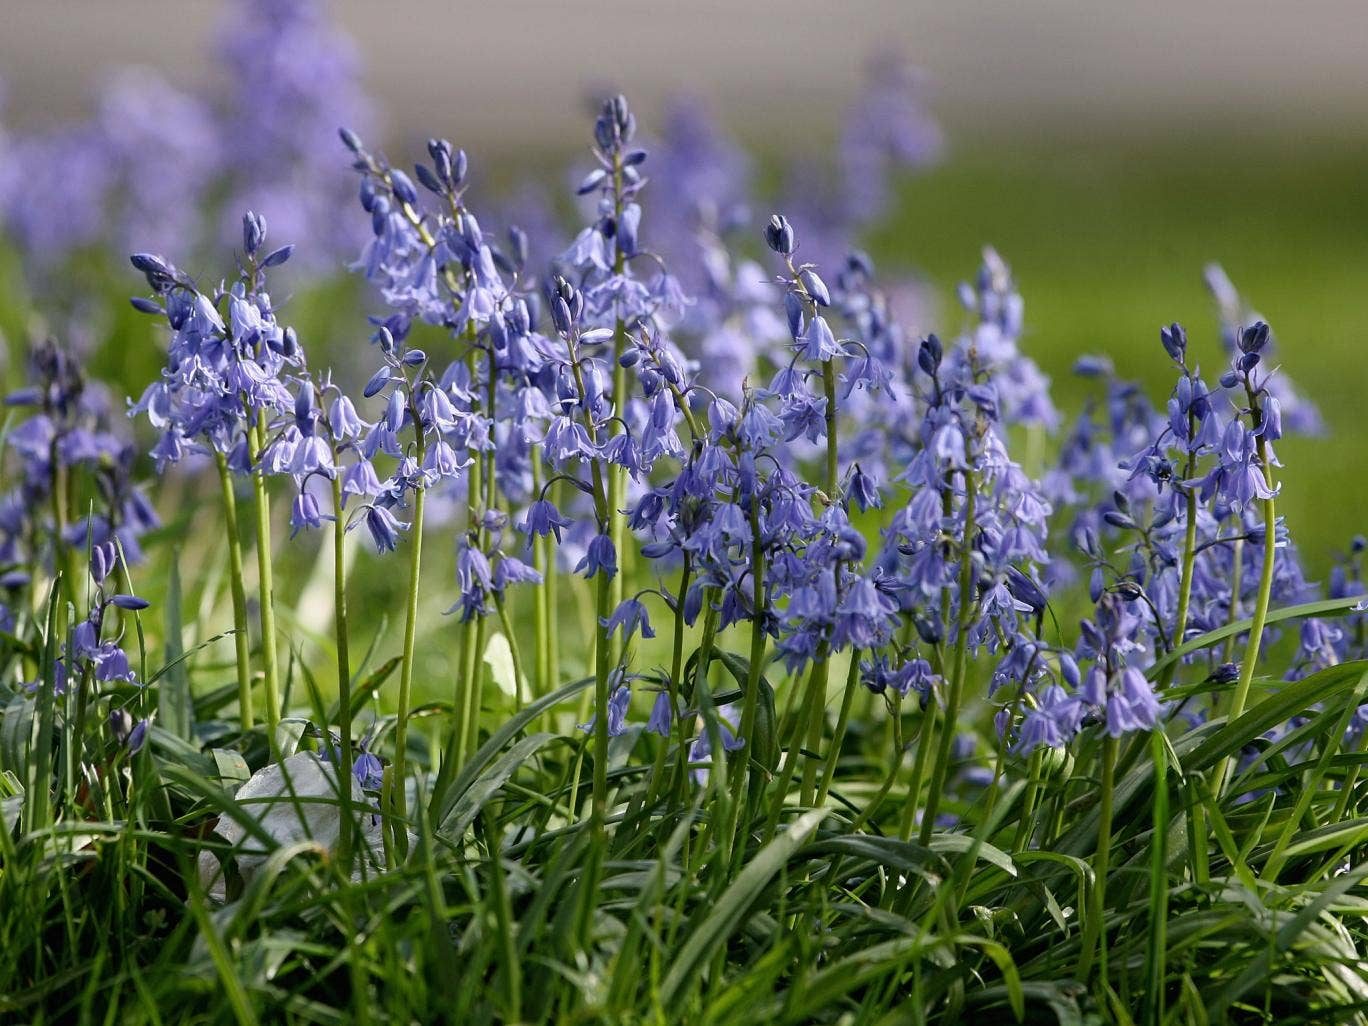 Bluebells are usually one of the first indications that spring is on the way